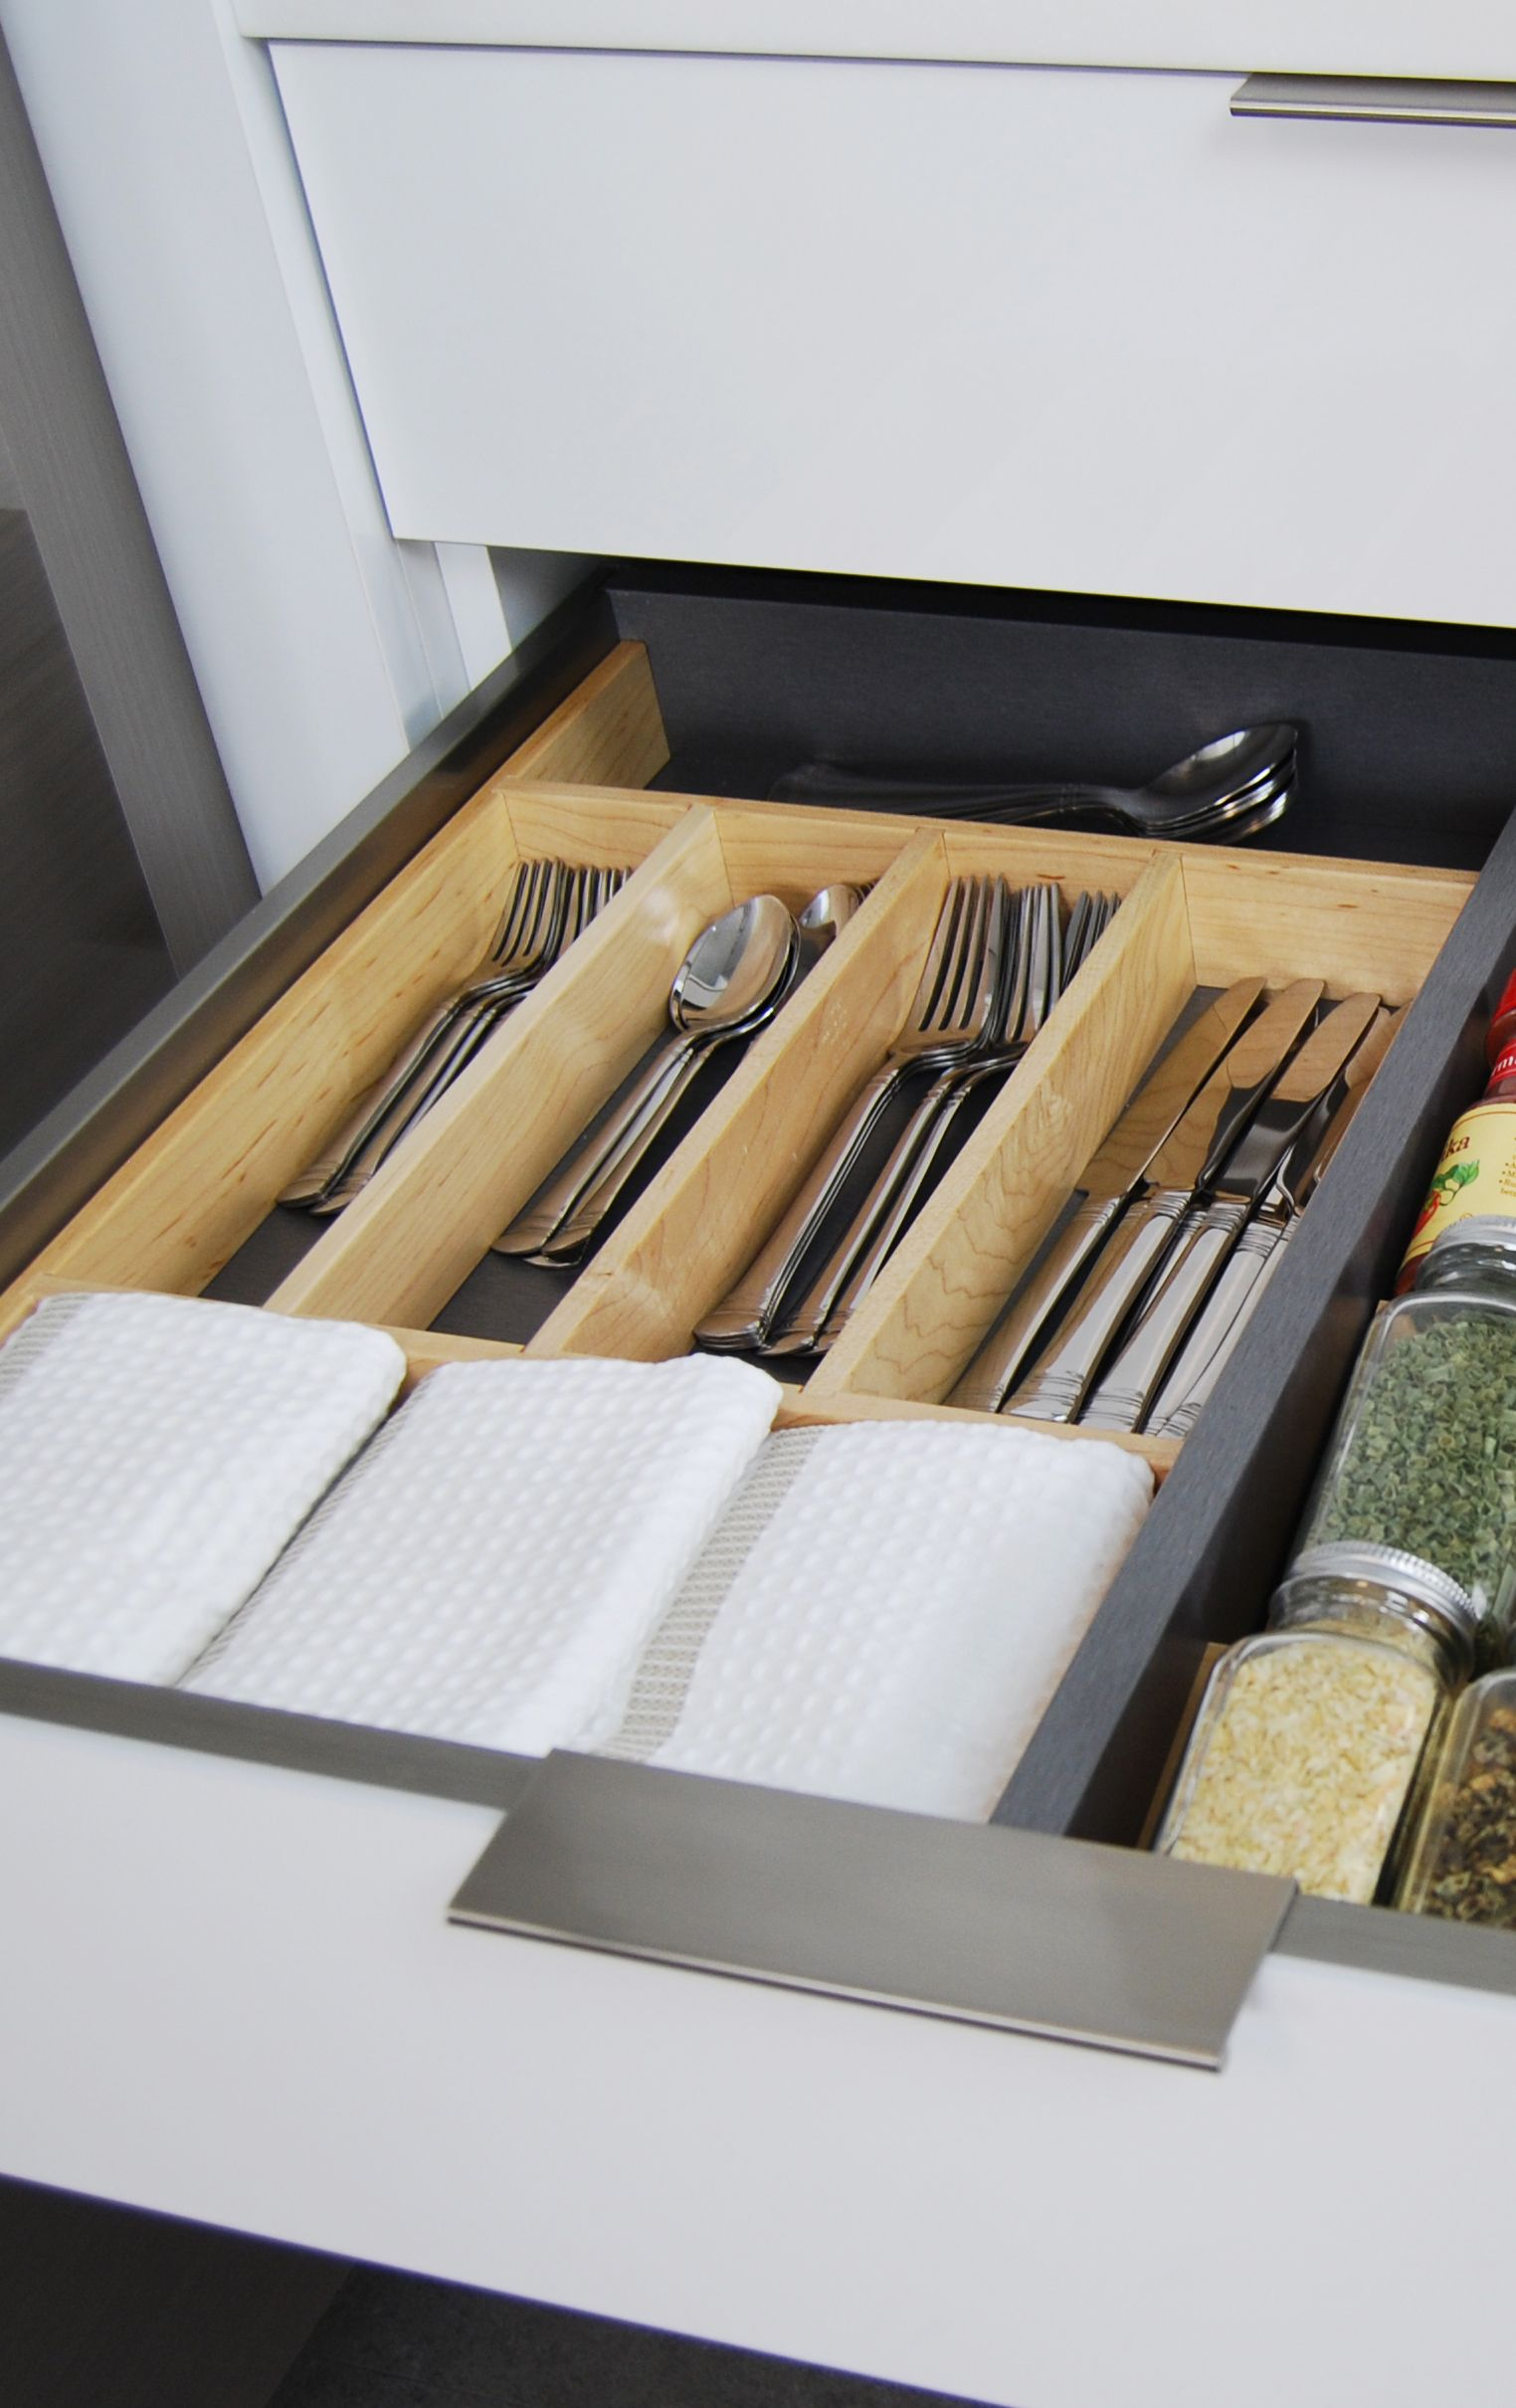 Wood Drawer Dividers And Inserts Like A Wooden Spice Rack